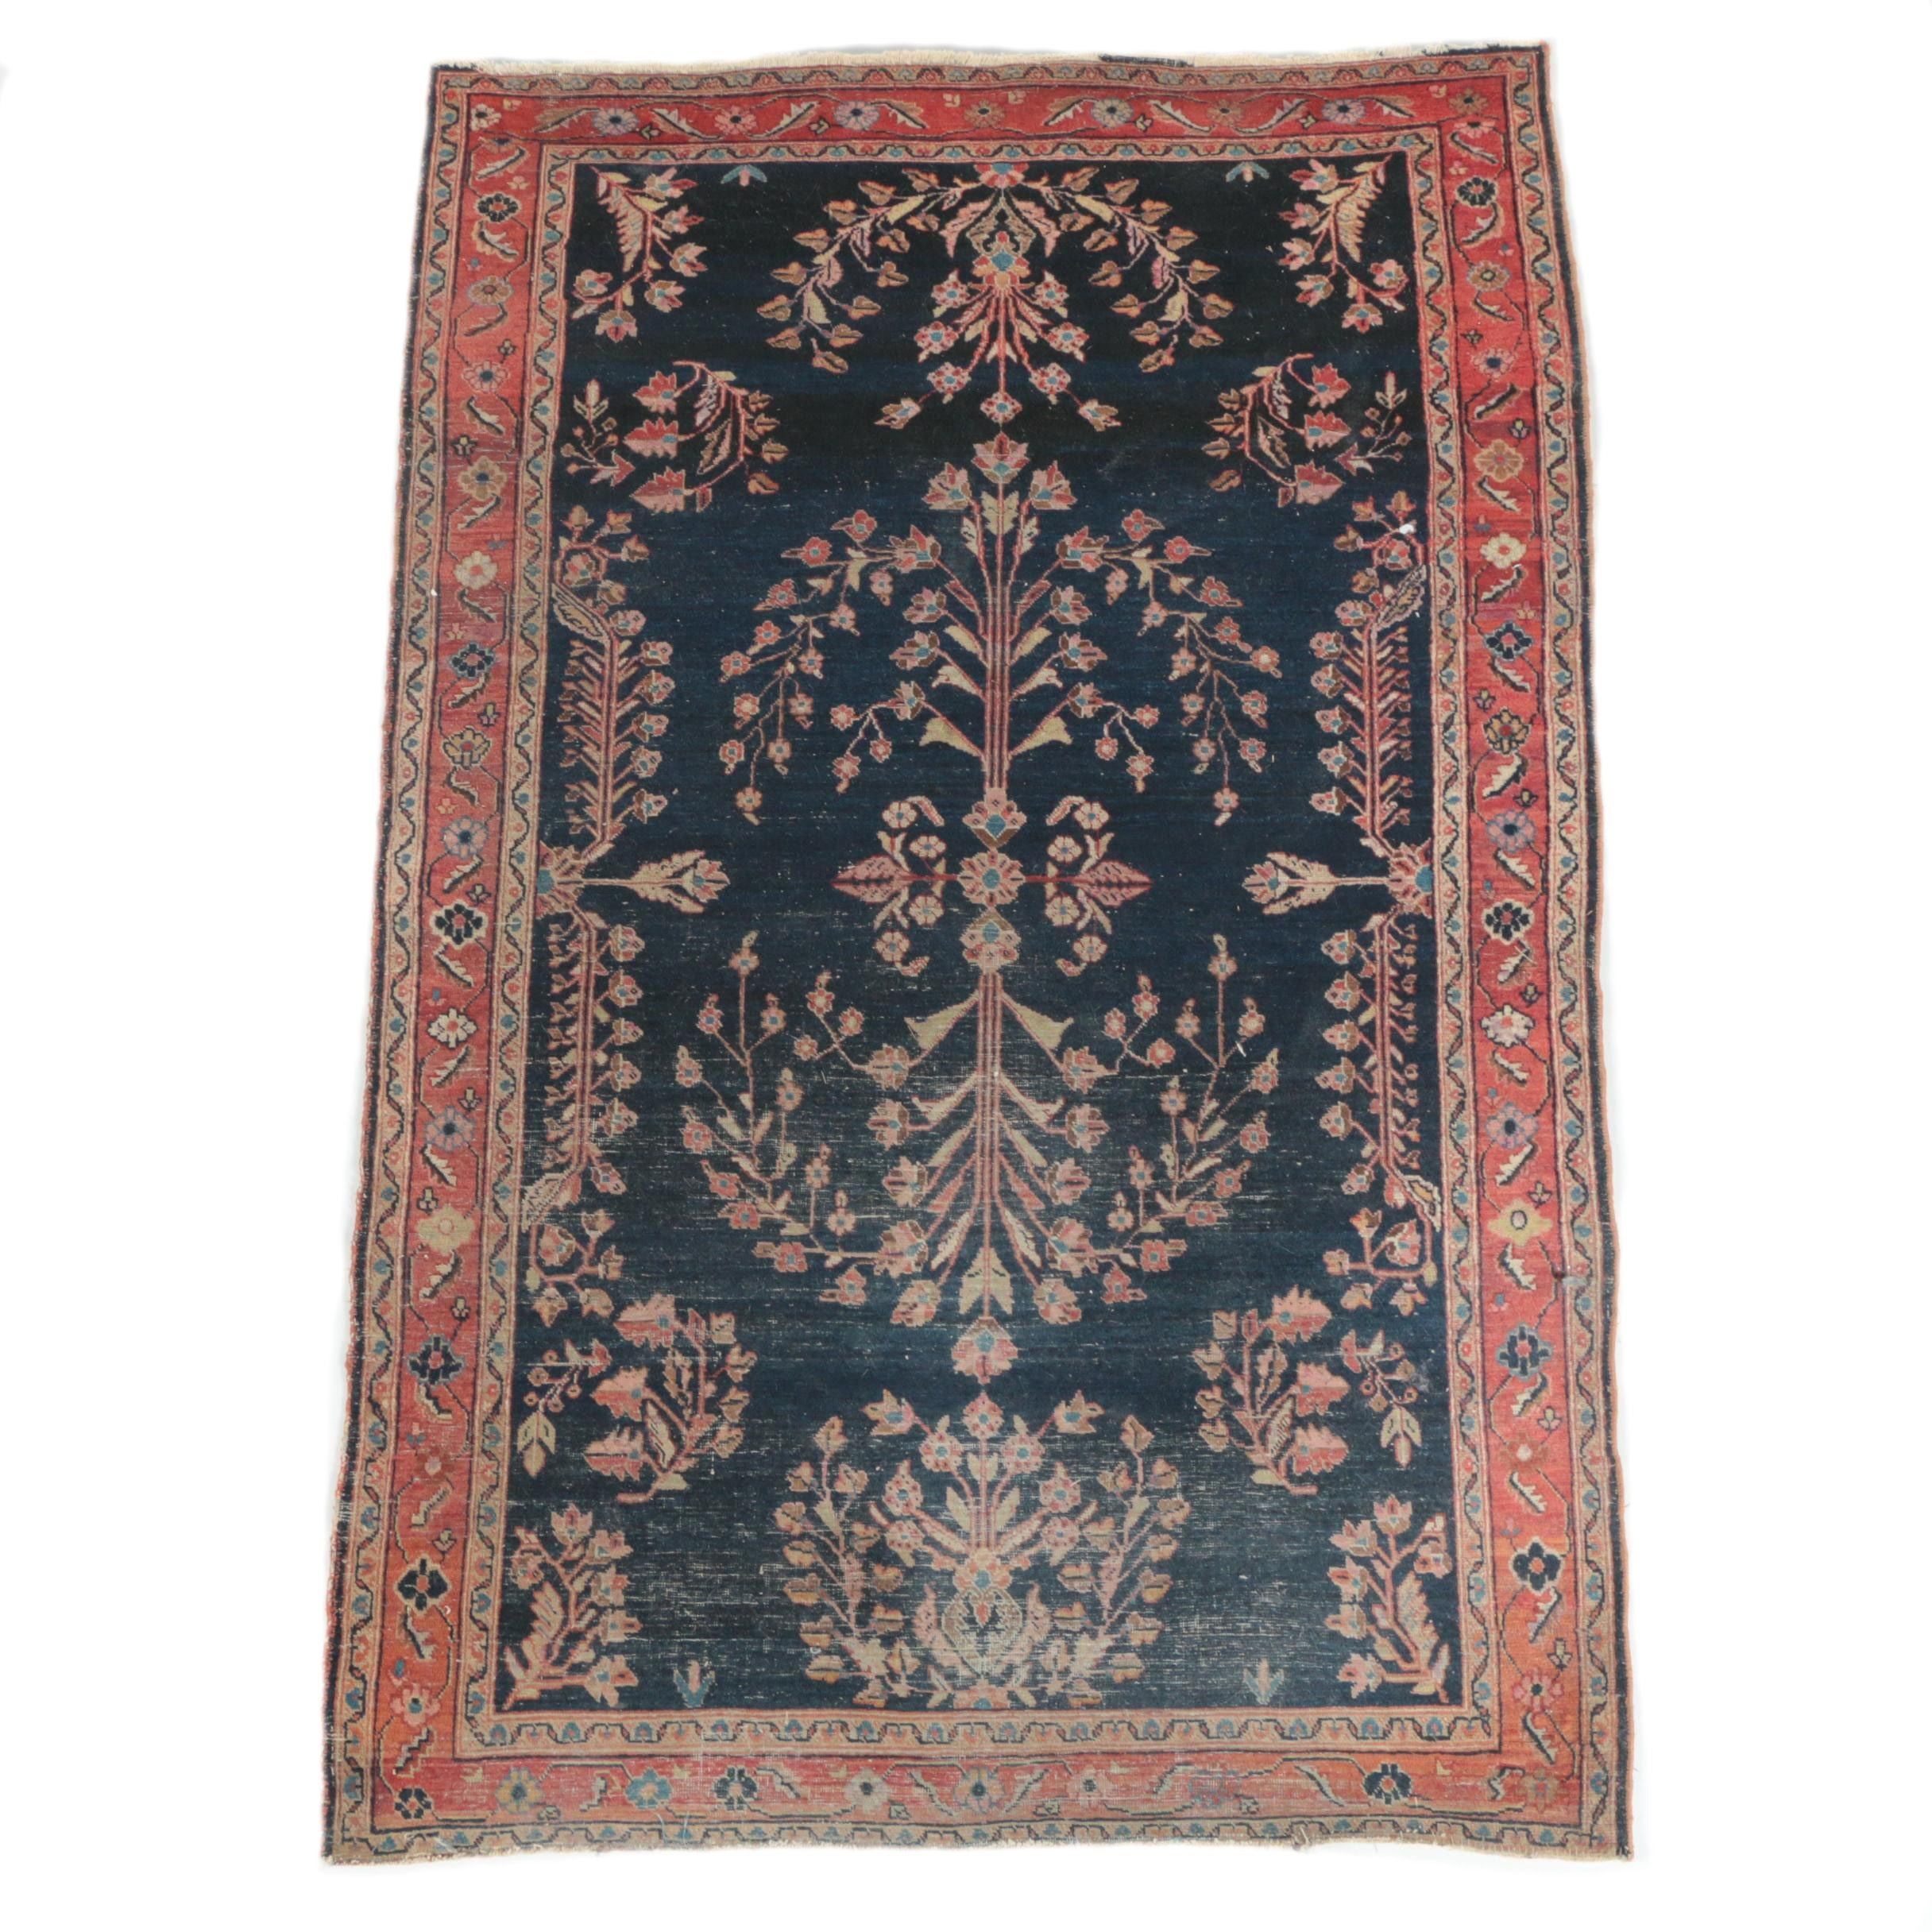 Semi-Antique Hand-Knotted Persian Sarouk Wool Area Rug